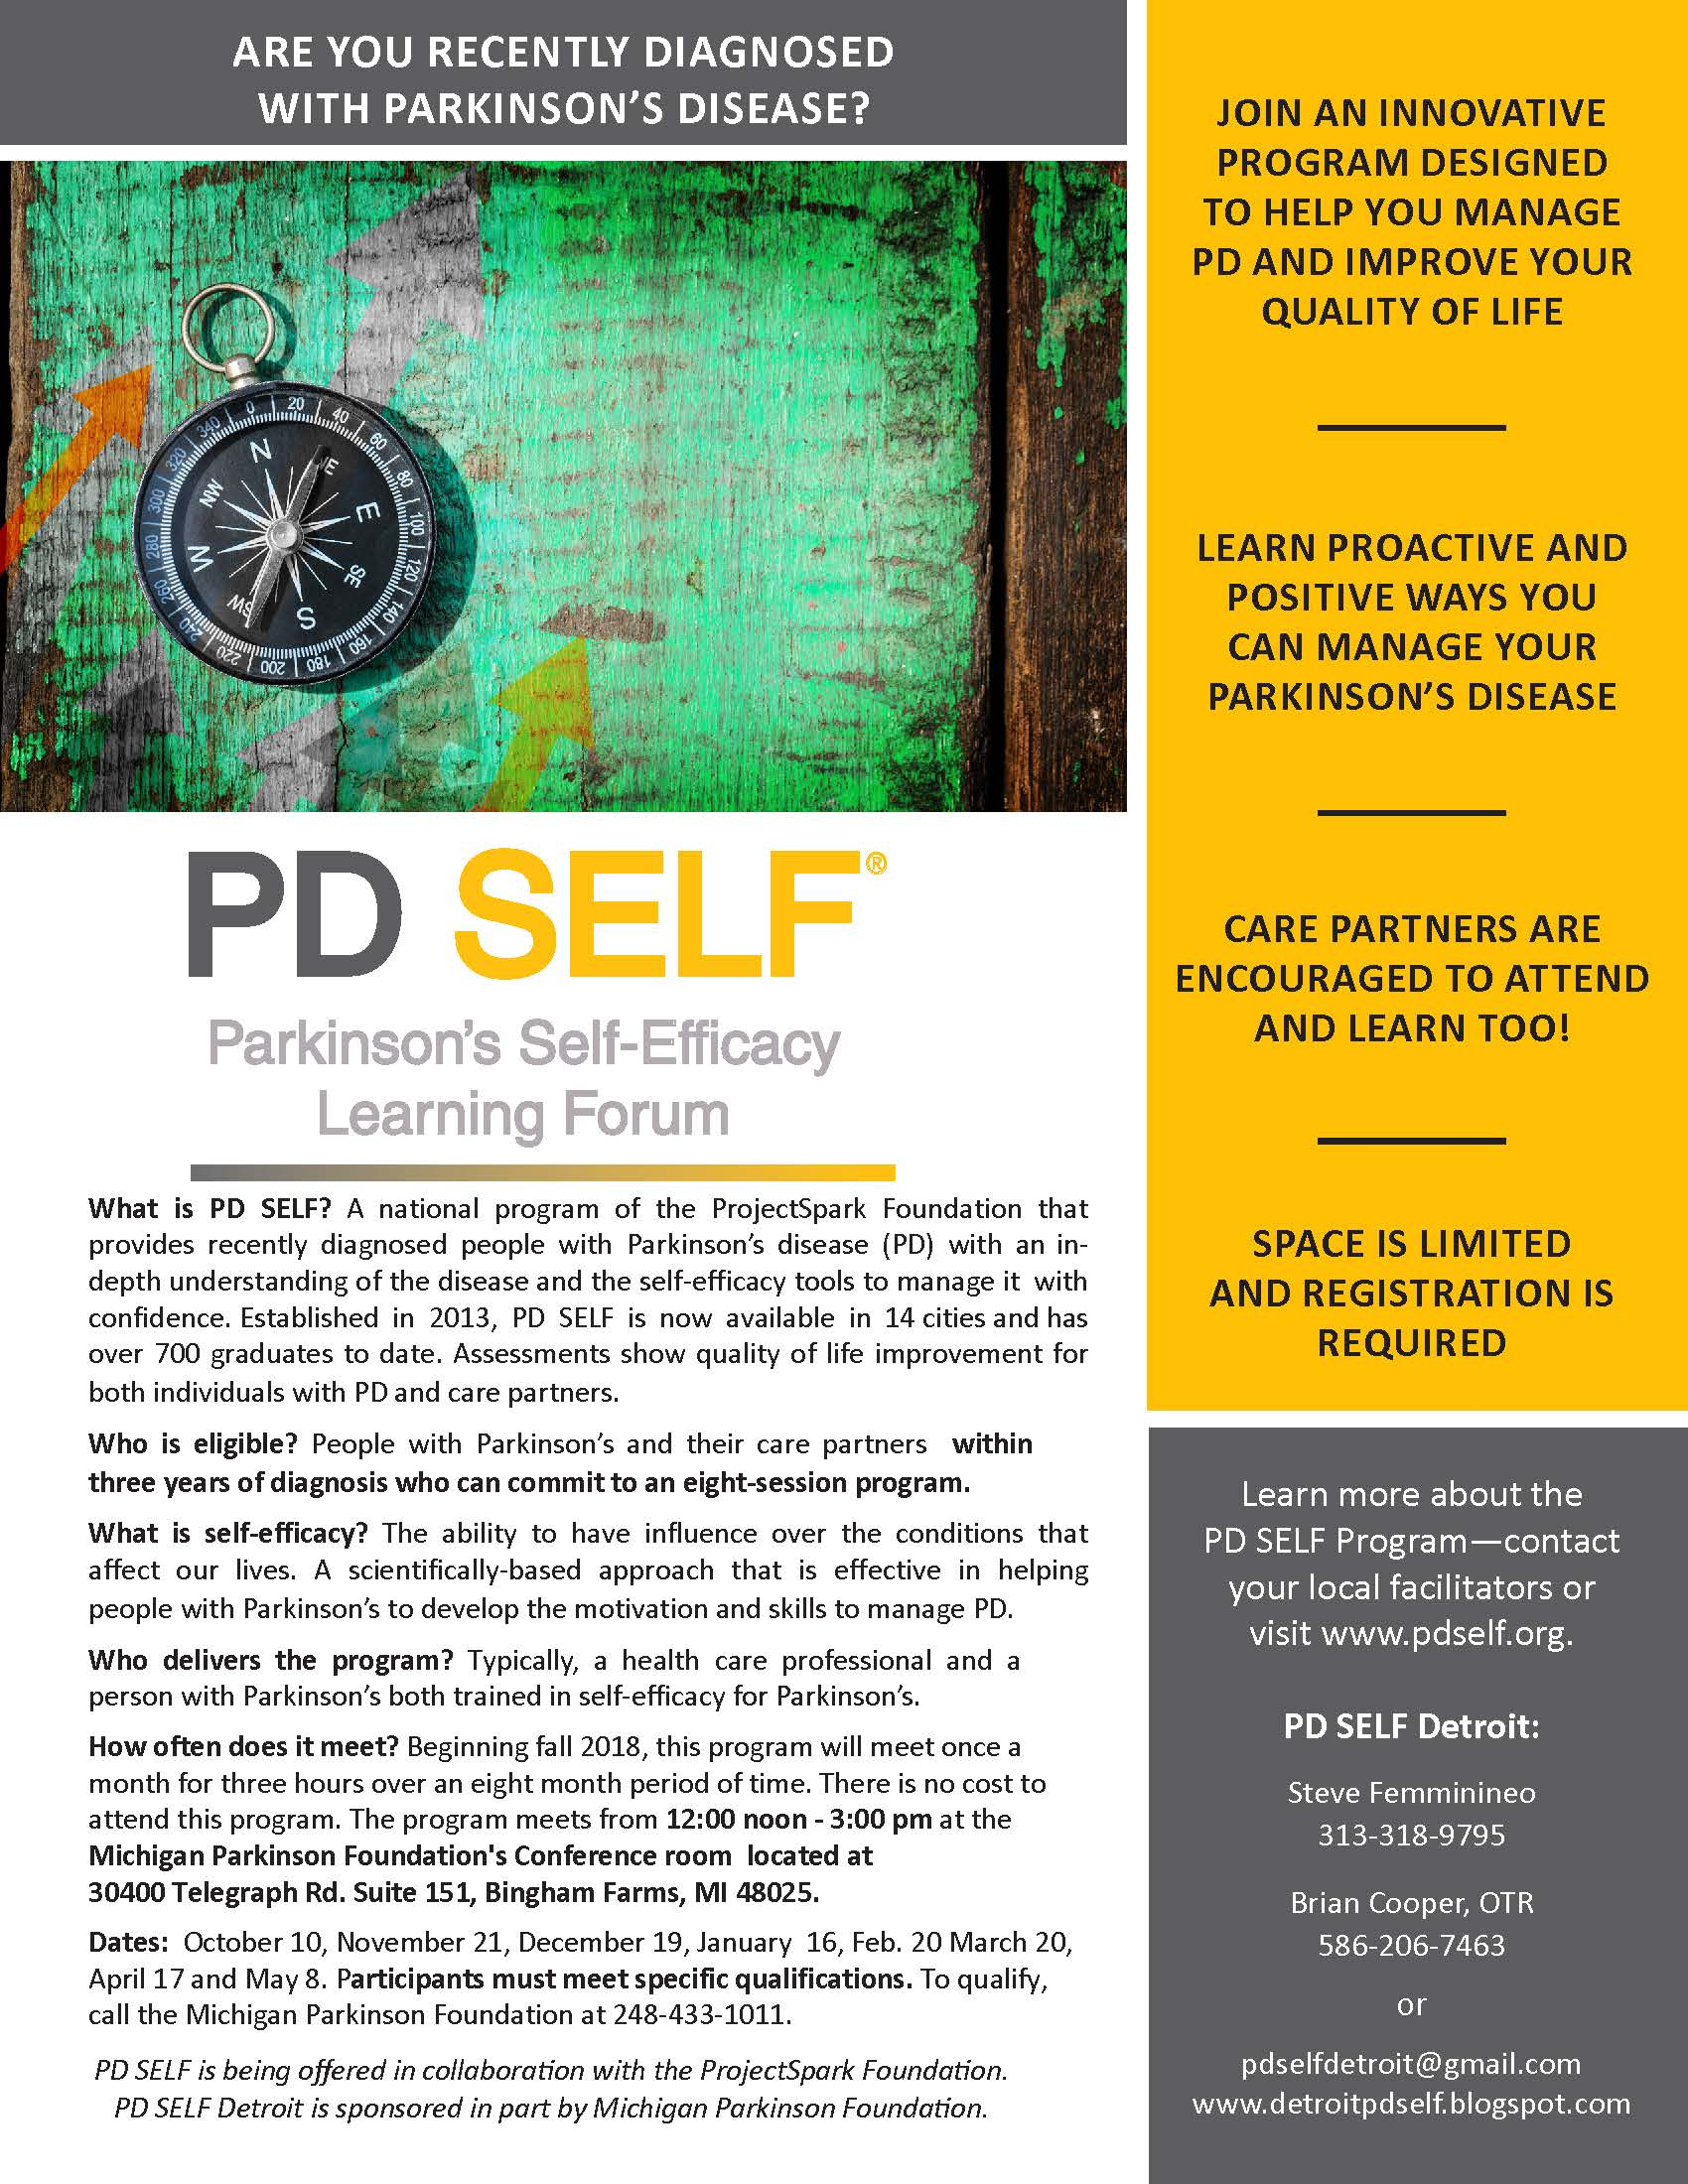 2018 PD Self flyer Detroit